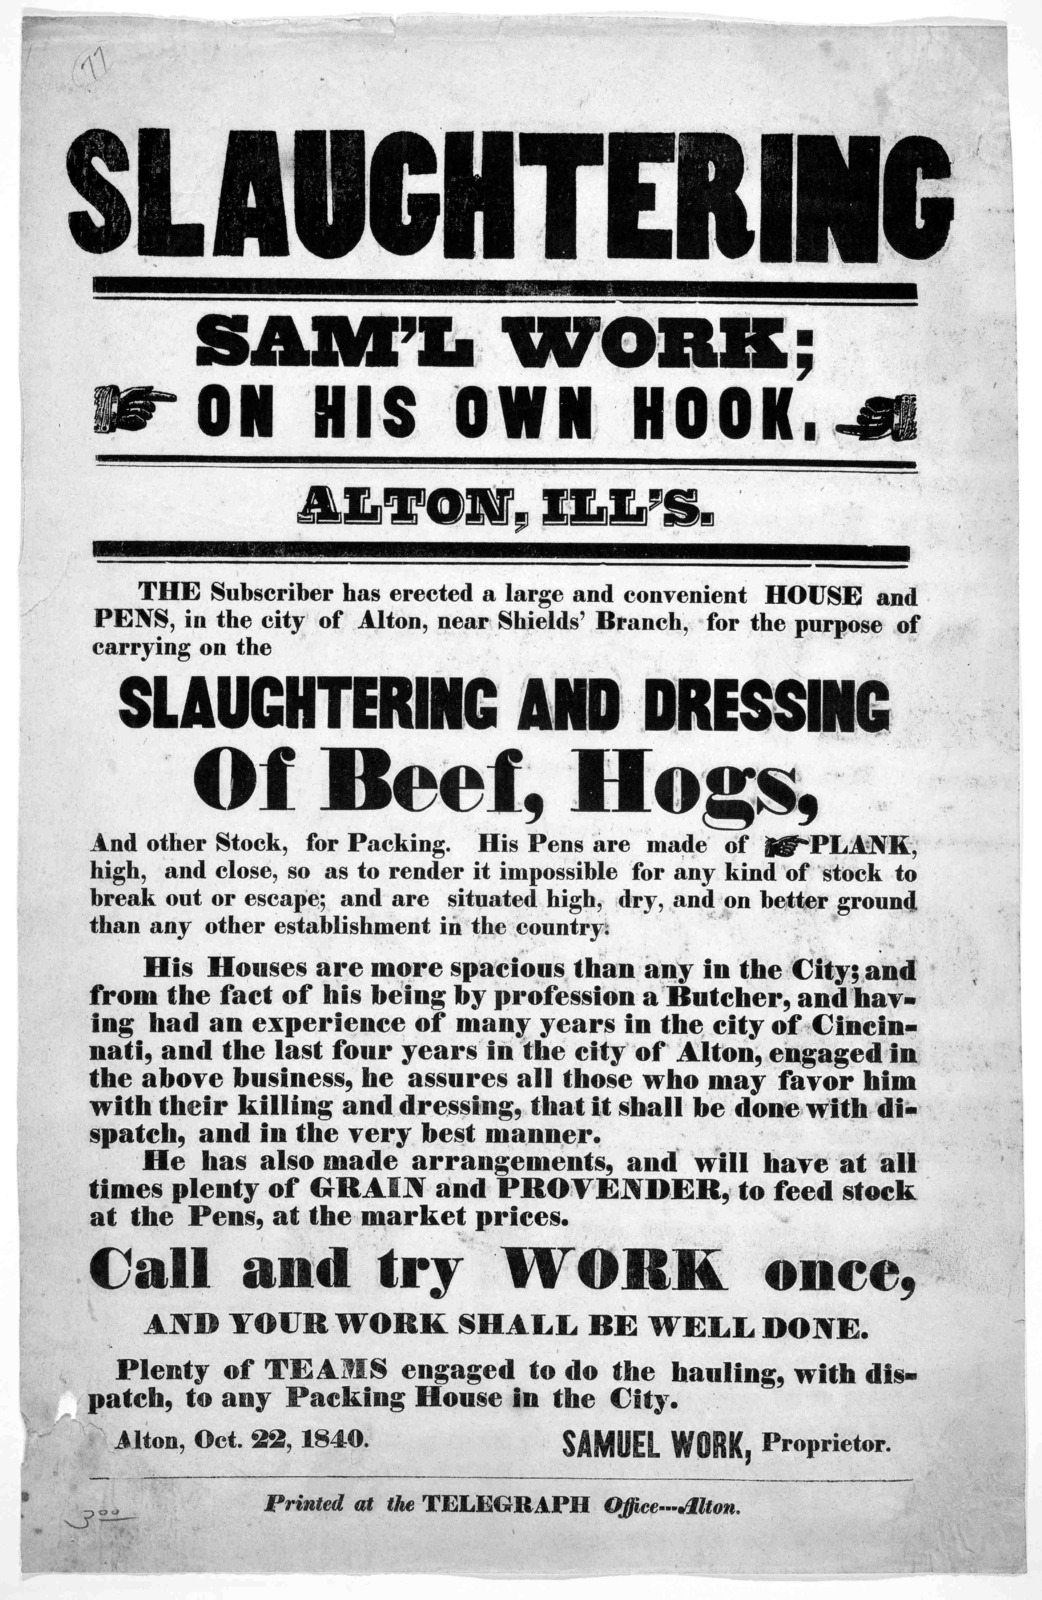 Slaughtering Sam'l Work; on his own hook. Alton, Ill's. The subscriber has erected a large and convenient house and pens, in the city of Alton, near Shields' Branch, for the purpose of carrying on the slaughtering and dressing of beef, hogs and